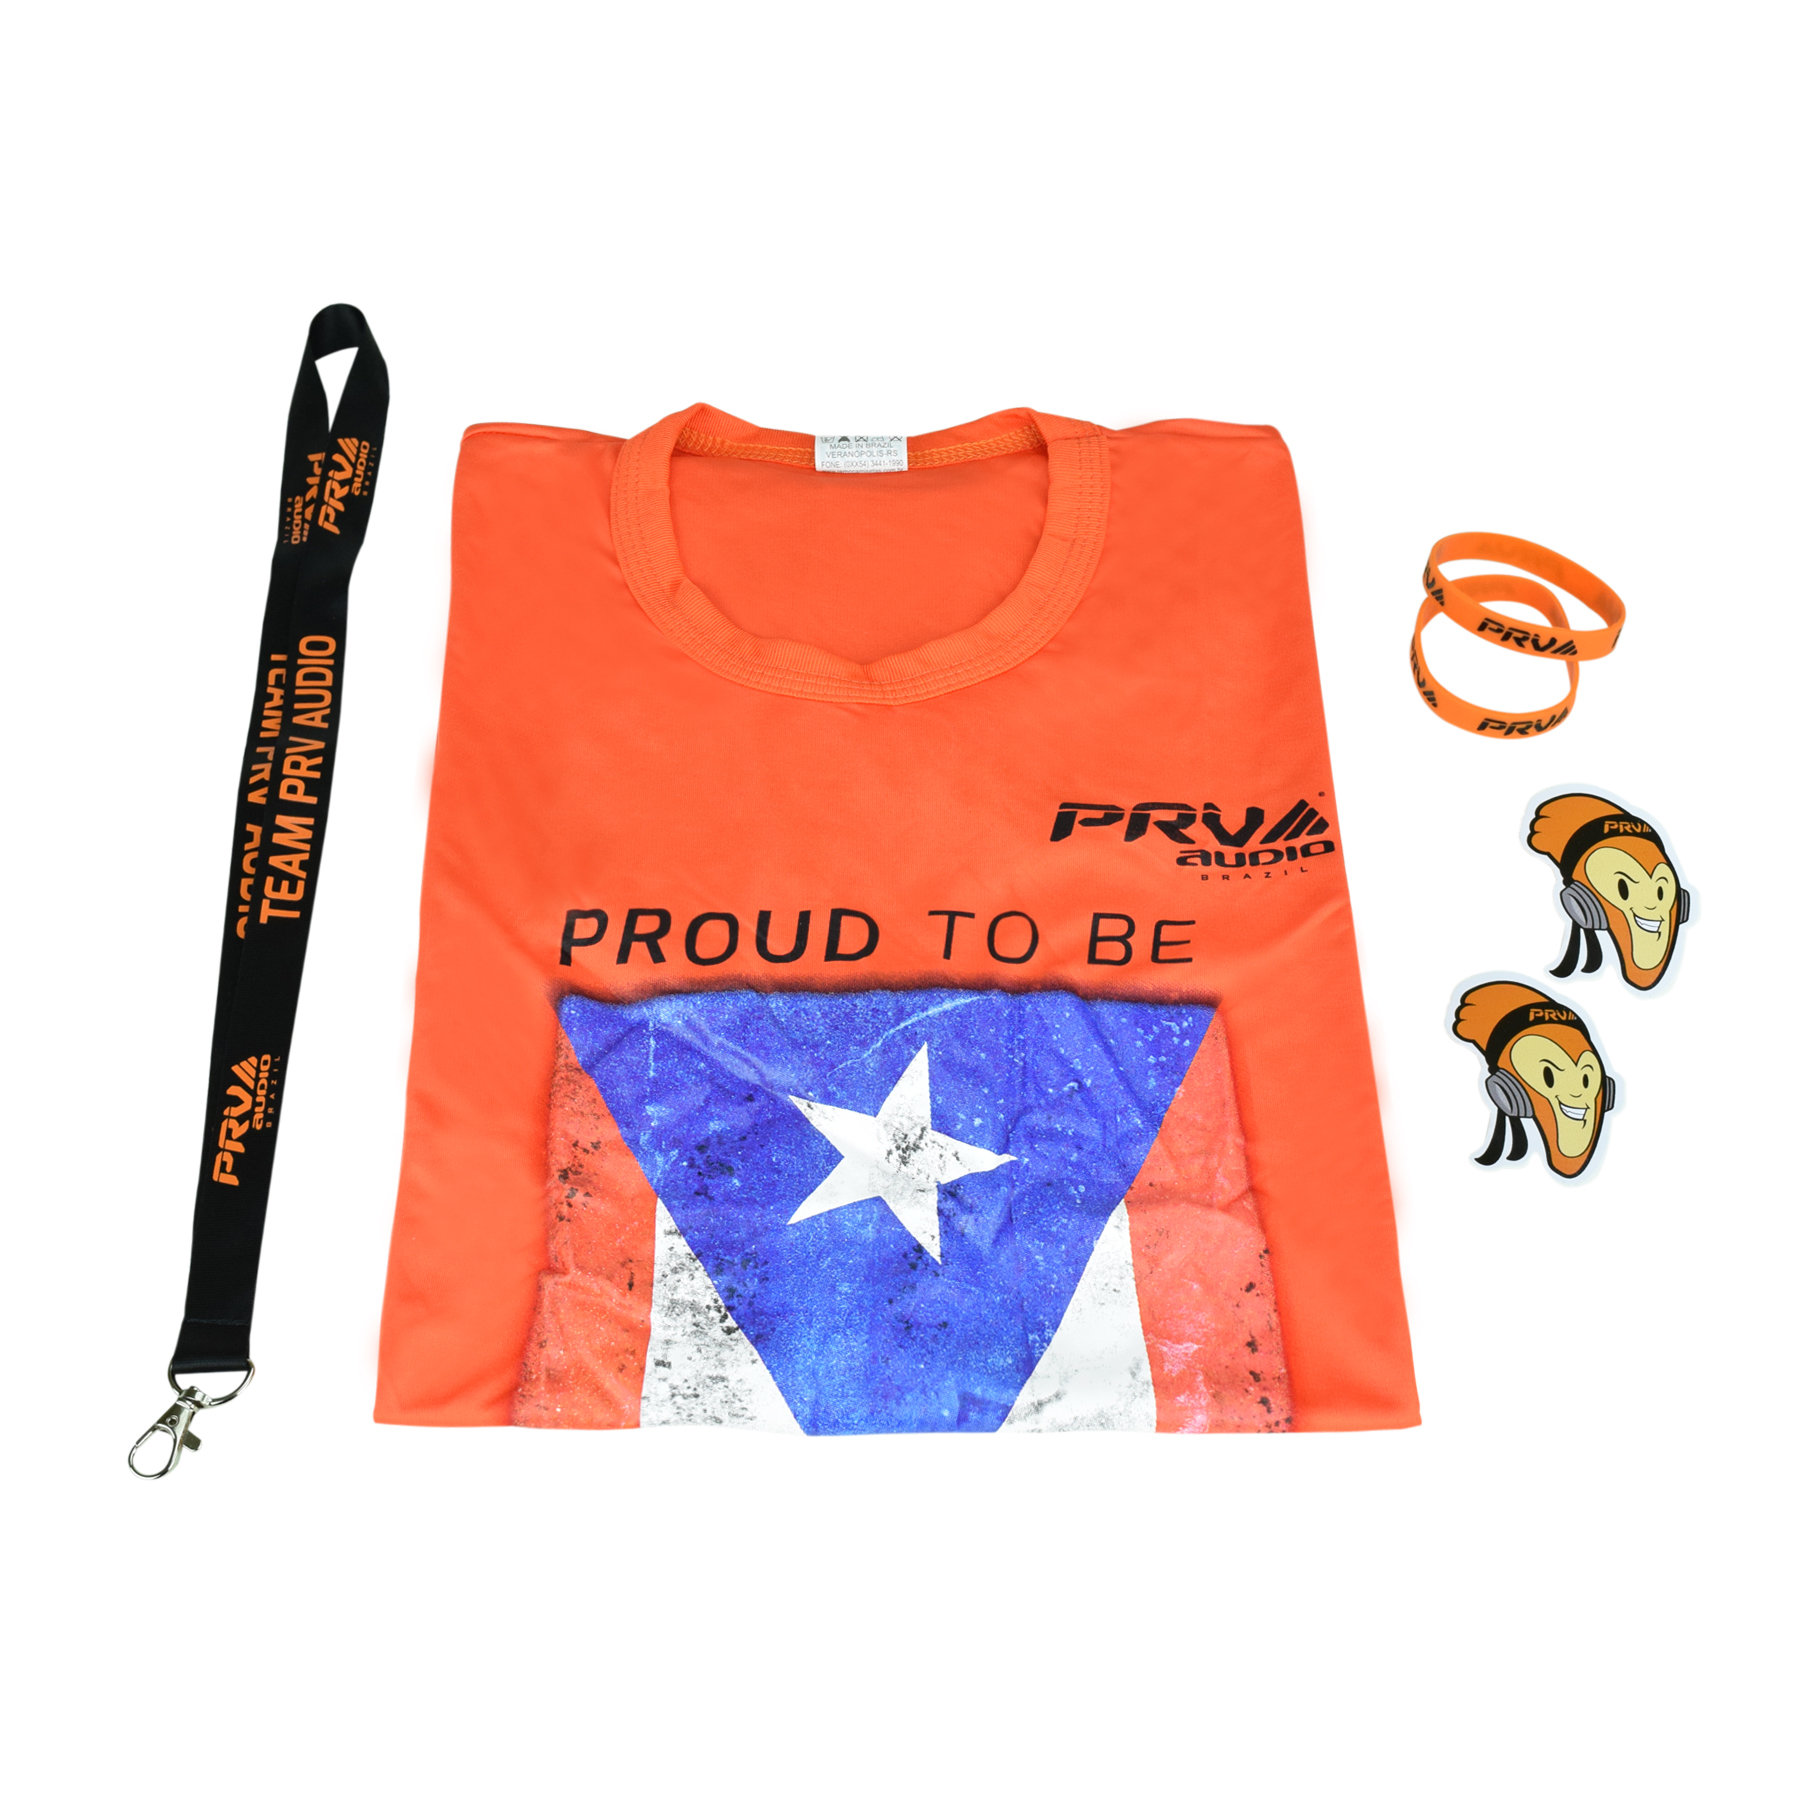 """PRV """"Proud to be PR"""" T-shirt Package pck6"""